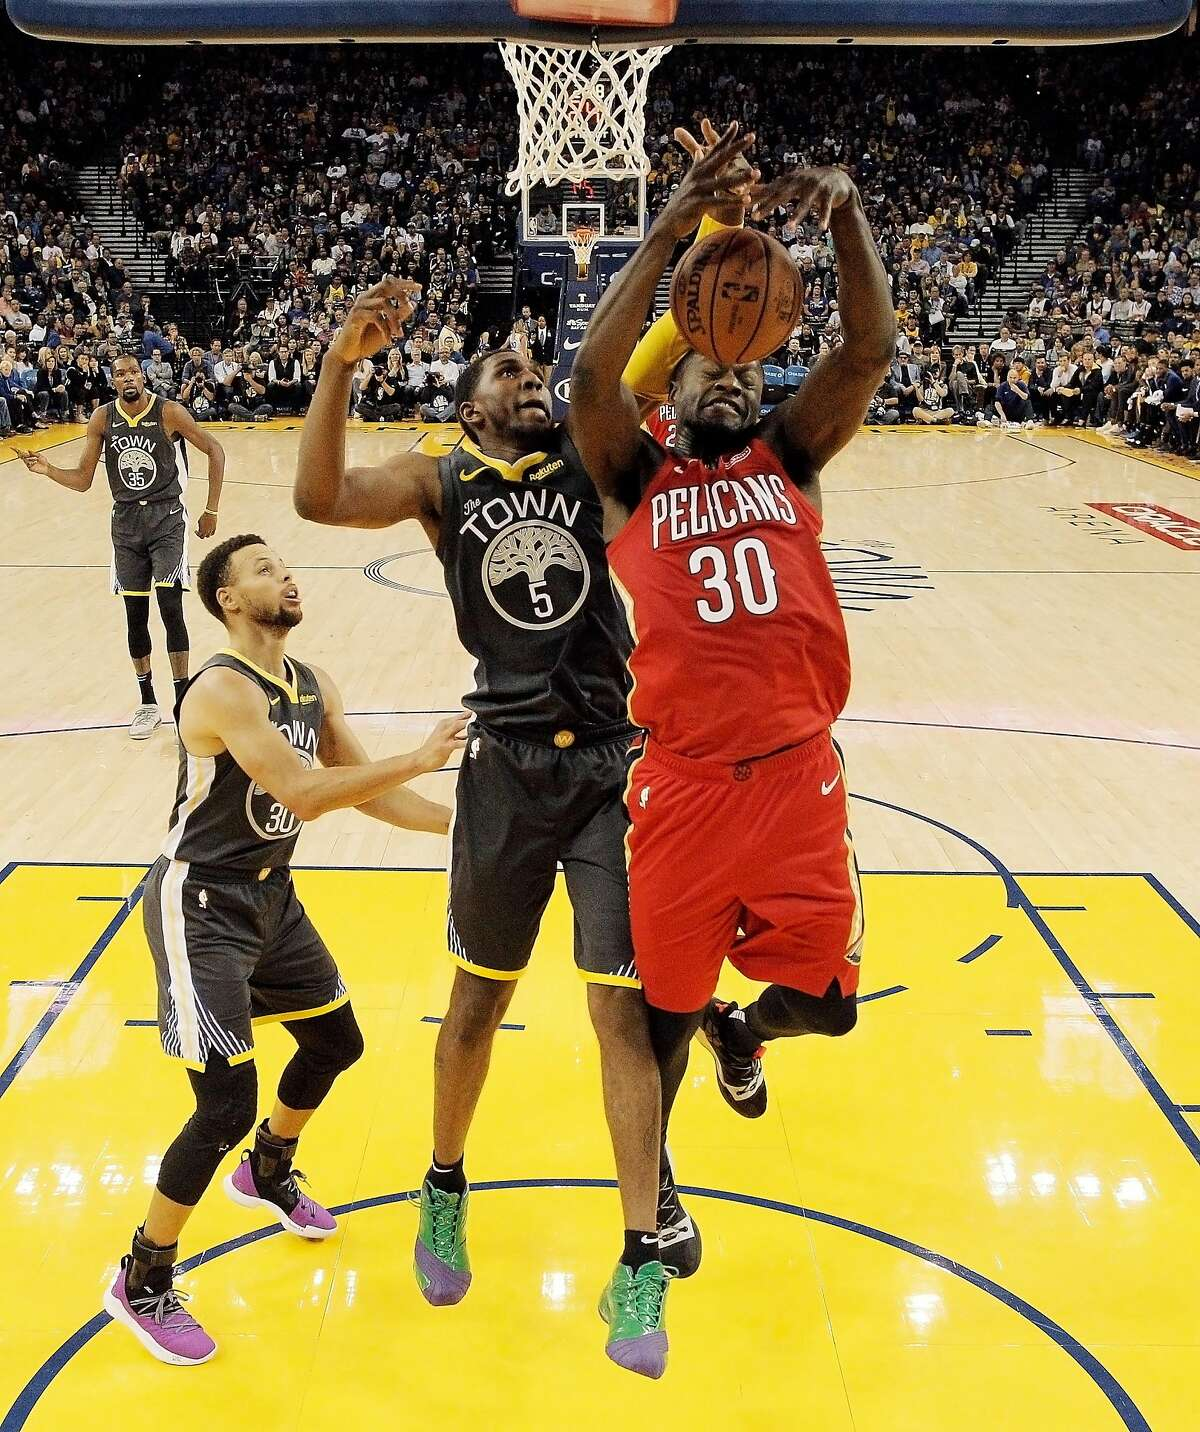 Kevon Looney (5) defends against a shot by Julius Randle (30) in the first half as the Golden State Warriors played the New Orleans Pelicans at Oracle Arena in Oakland, Calif., on Wednesday, October 31, 2018.